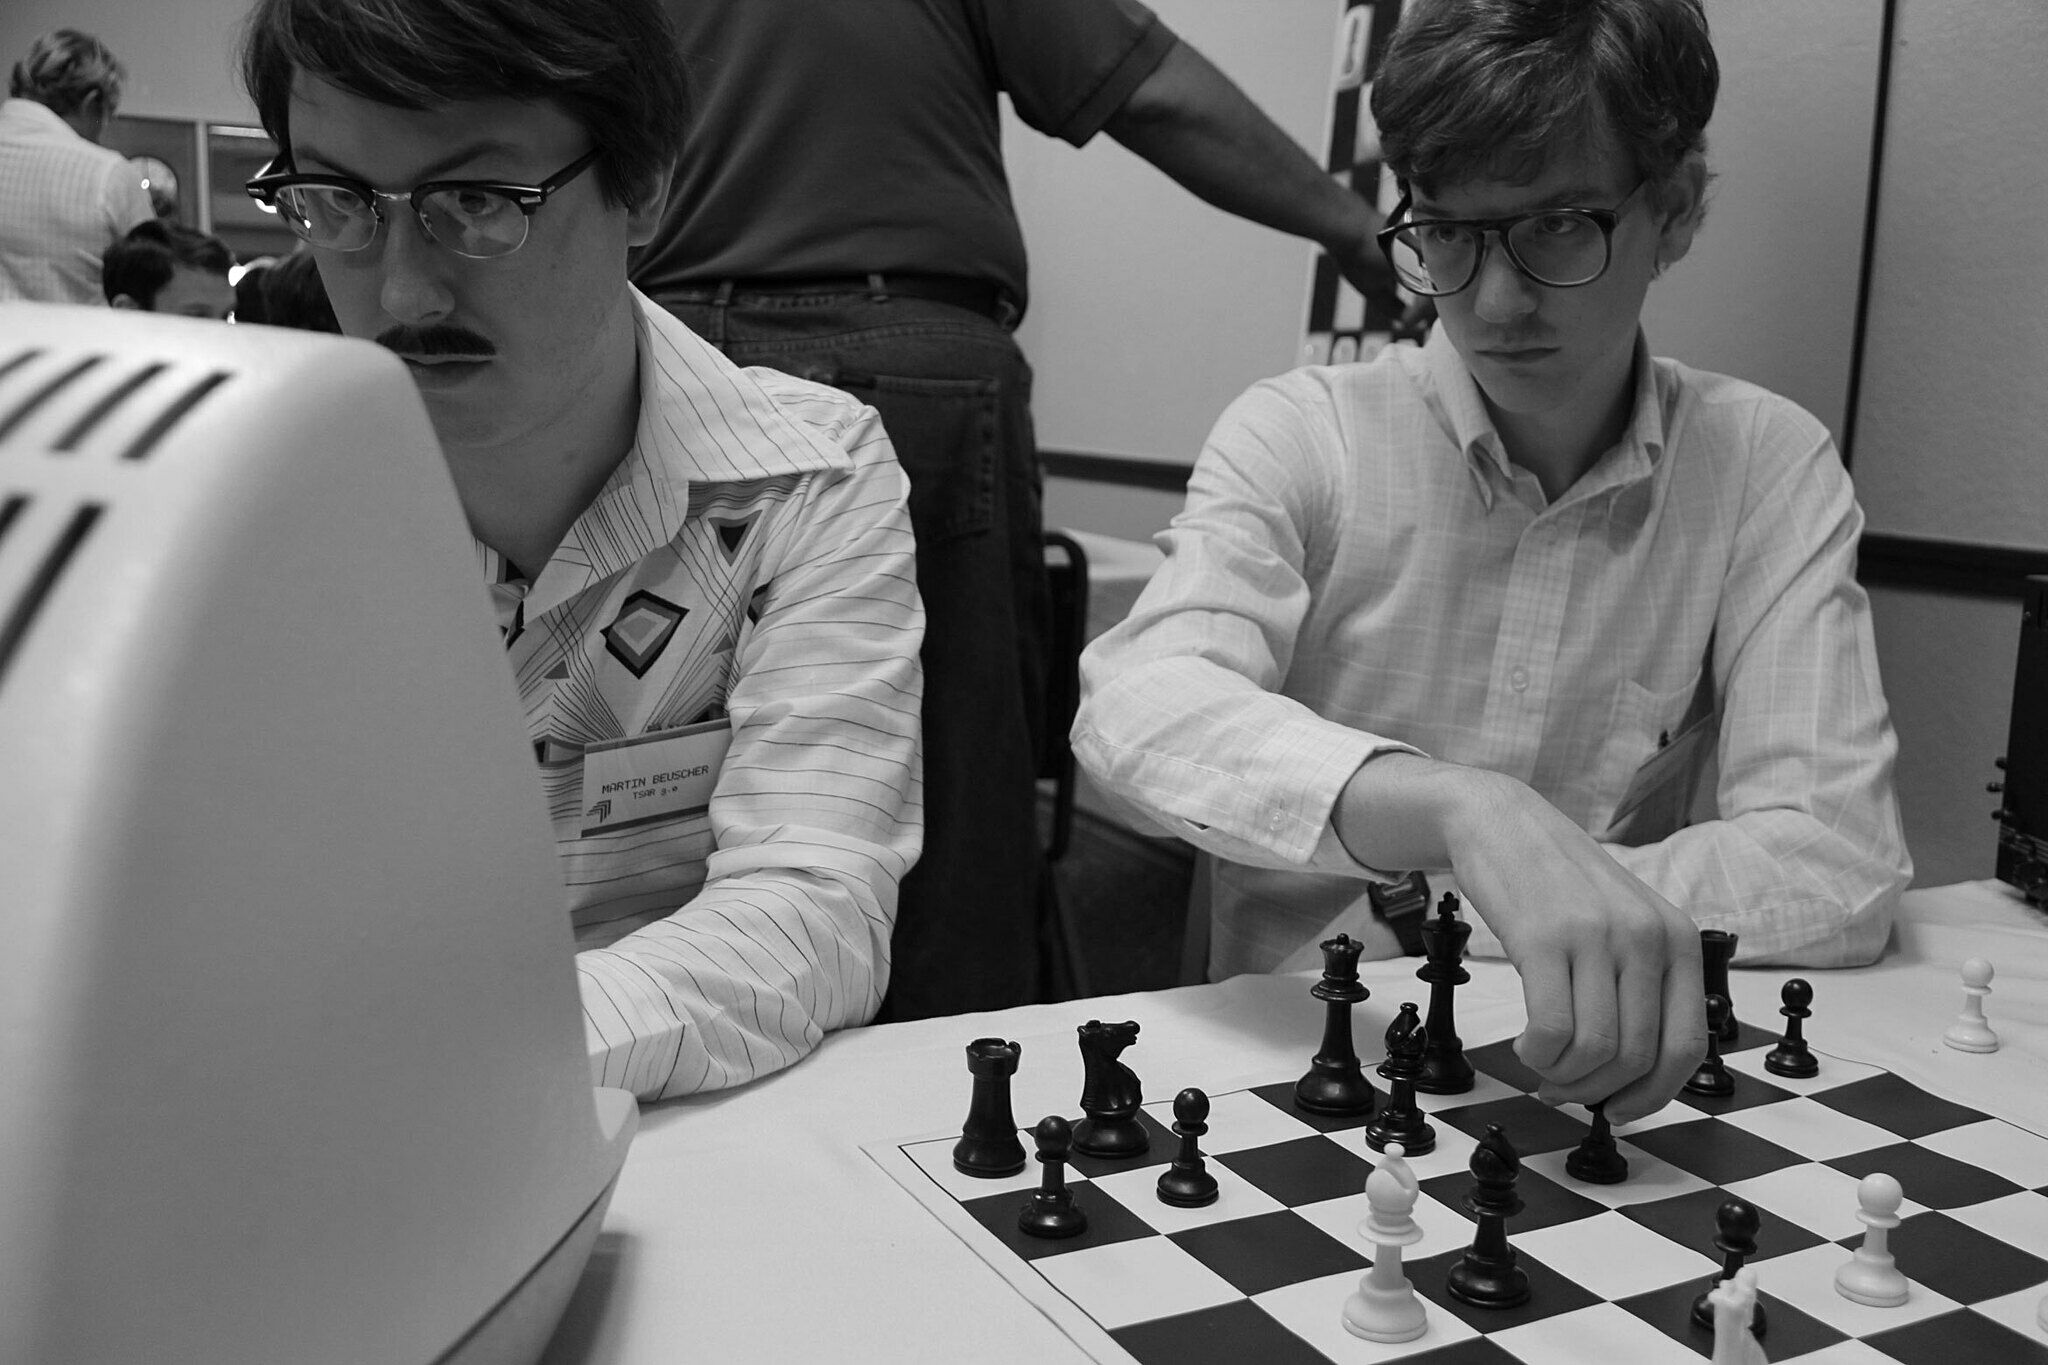 Photograph of people playing chess.